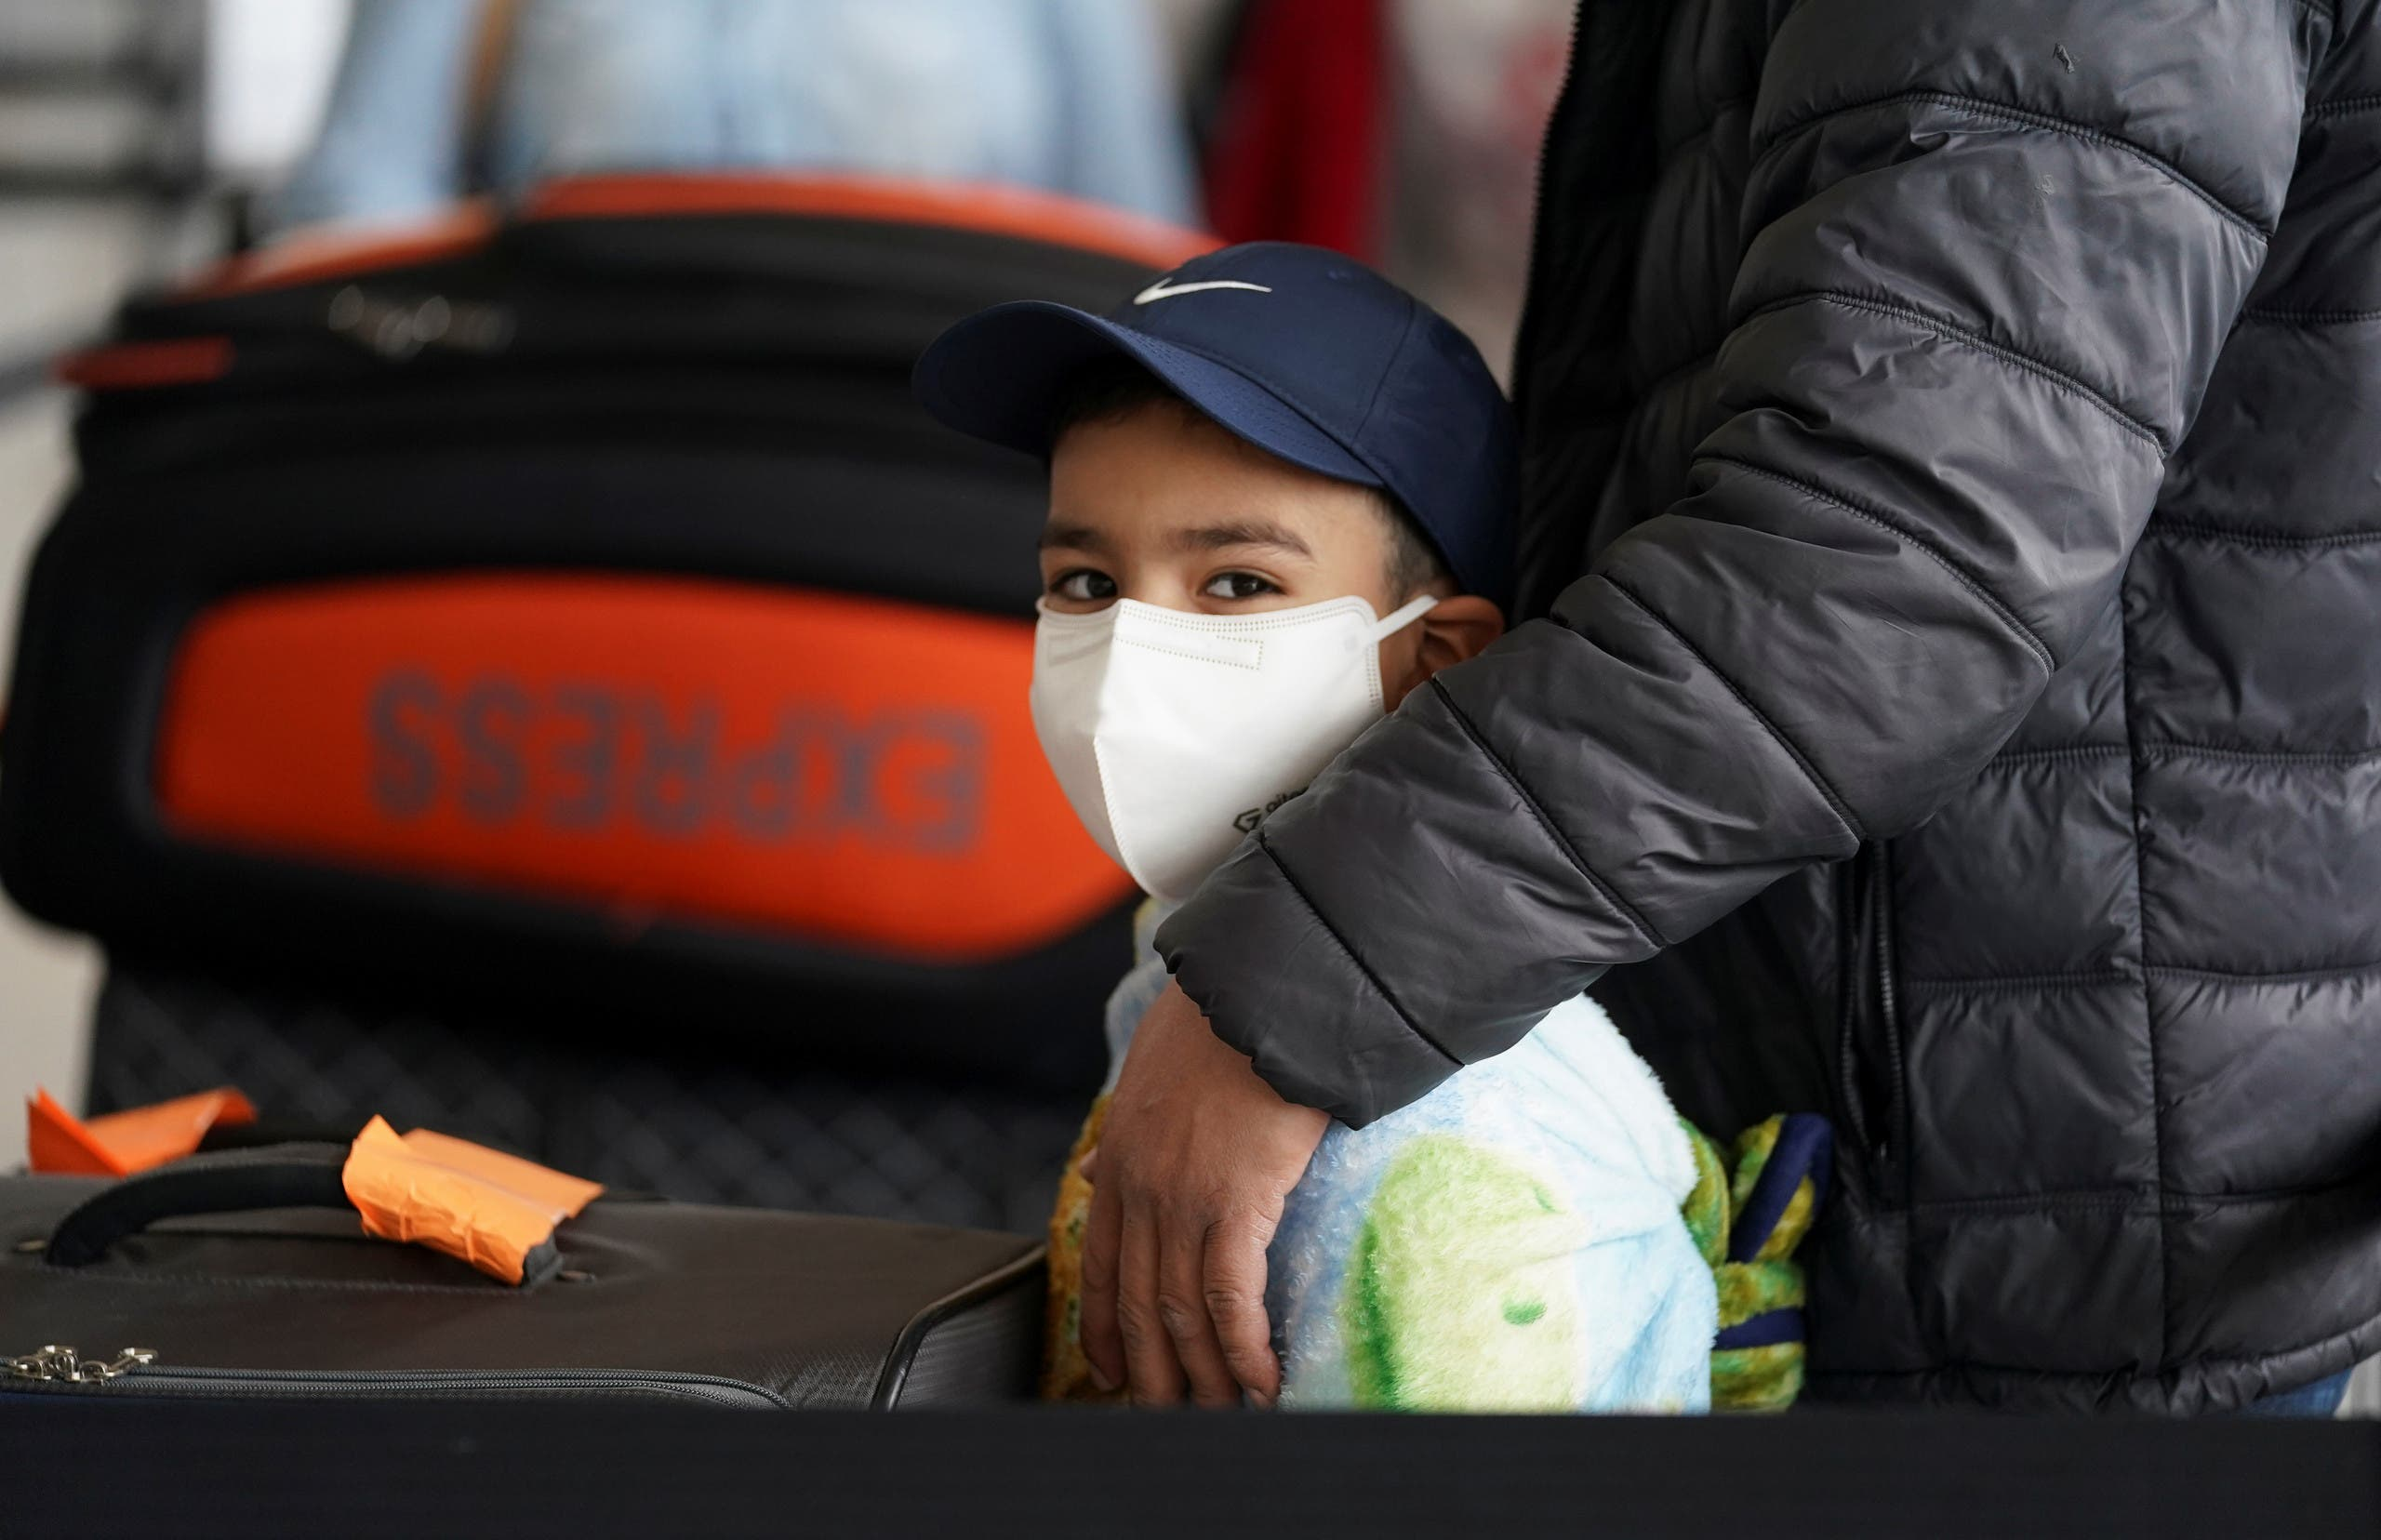 A boy wearing a face mask stands in the check-in line with his family at Dulles International Airport a day after U.S. President Donald Trump announced travel restrictions on flights from Europe to the United States for 30 days to try to contain coronavirus, in Dulles, Virginia, U.S., March 12, 2020. (Reuters)